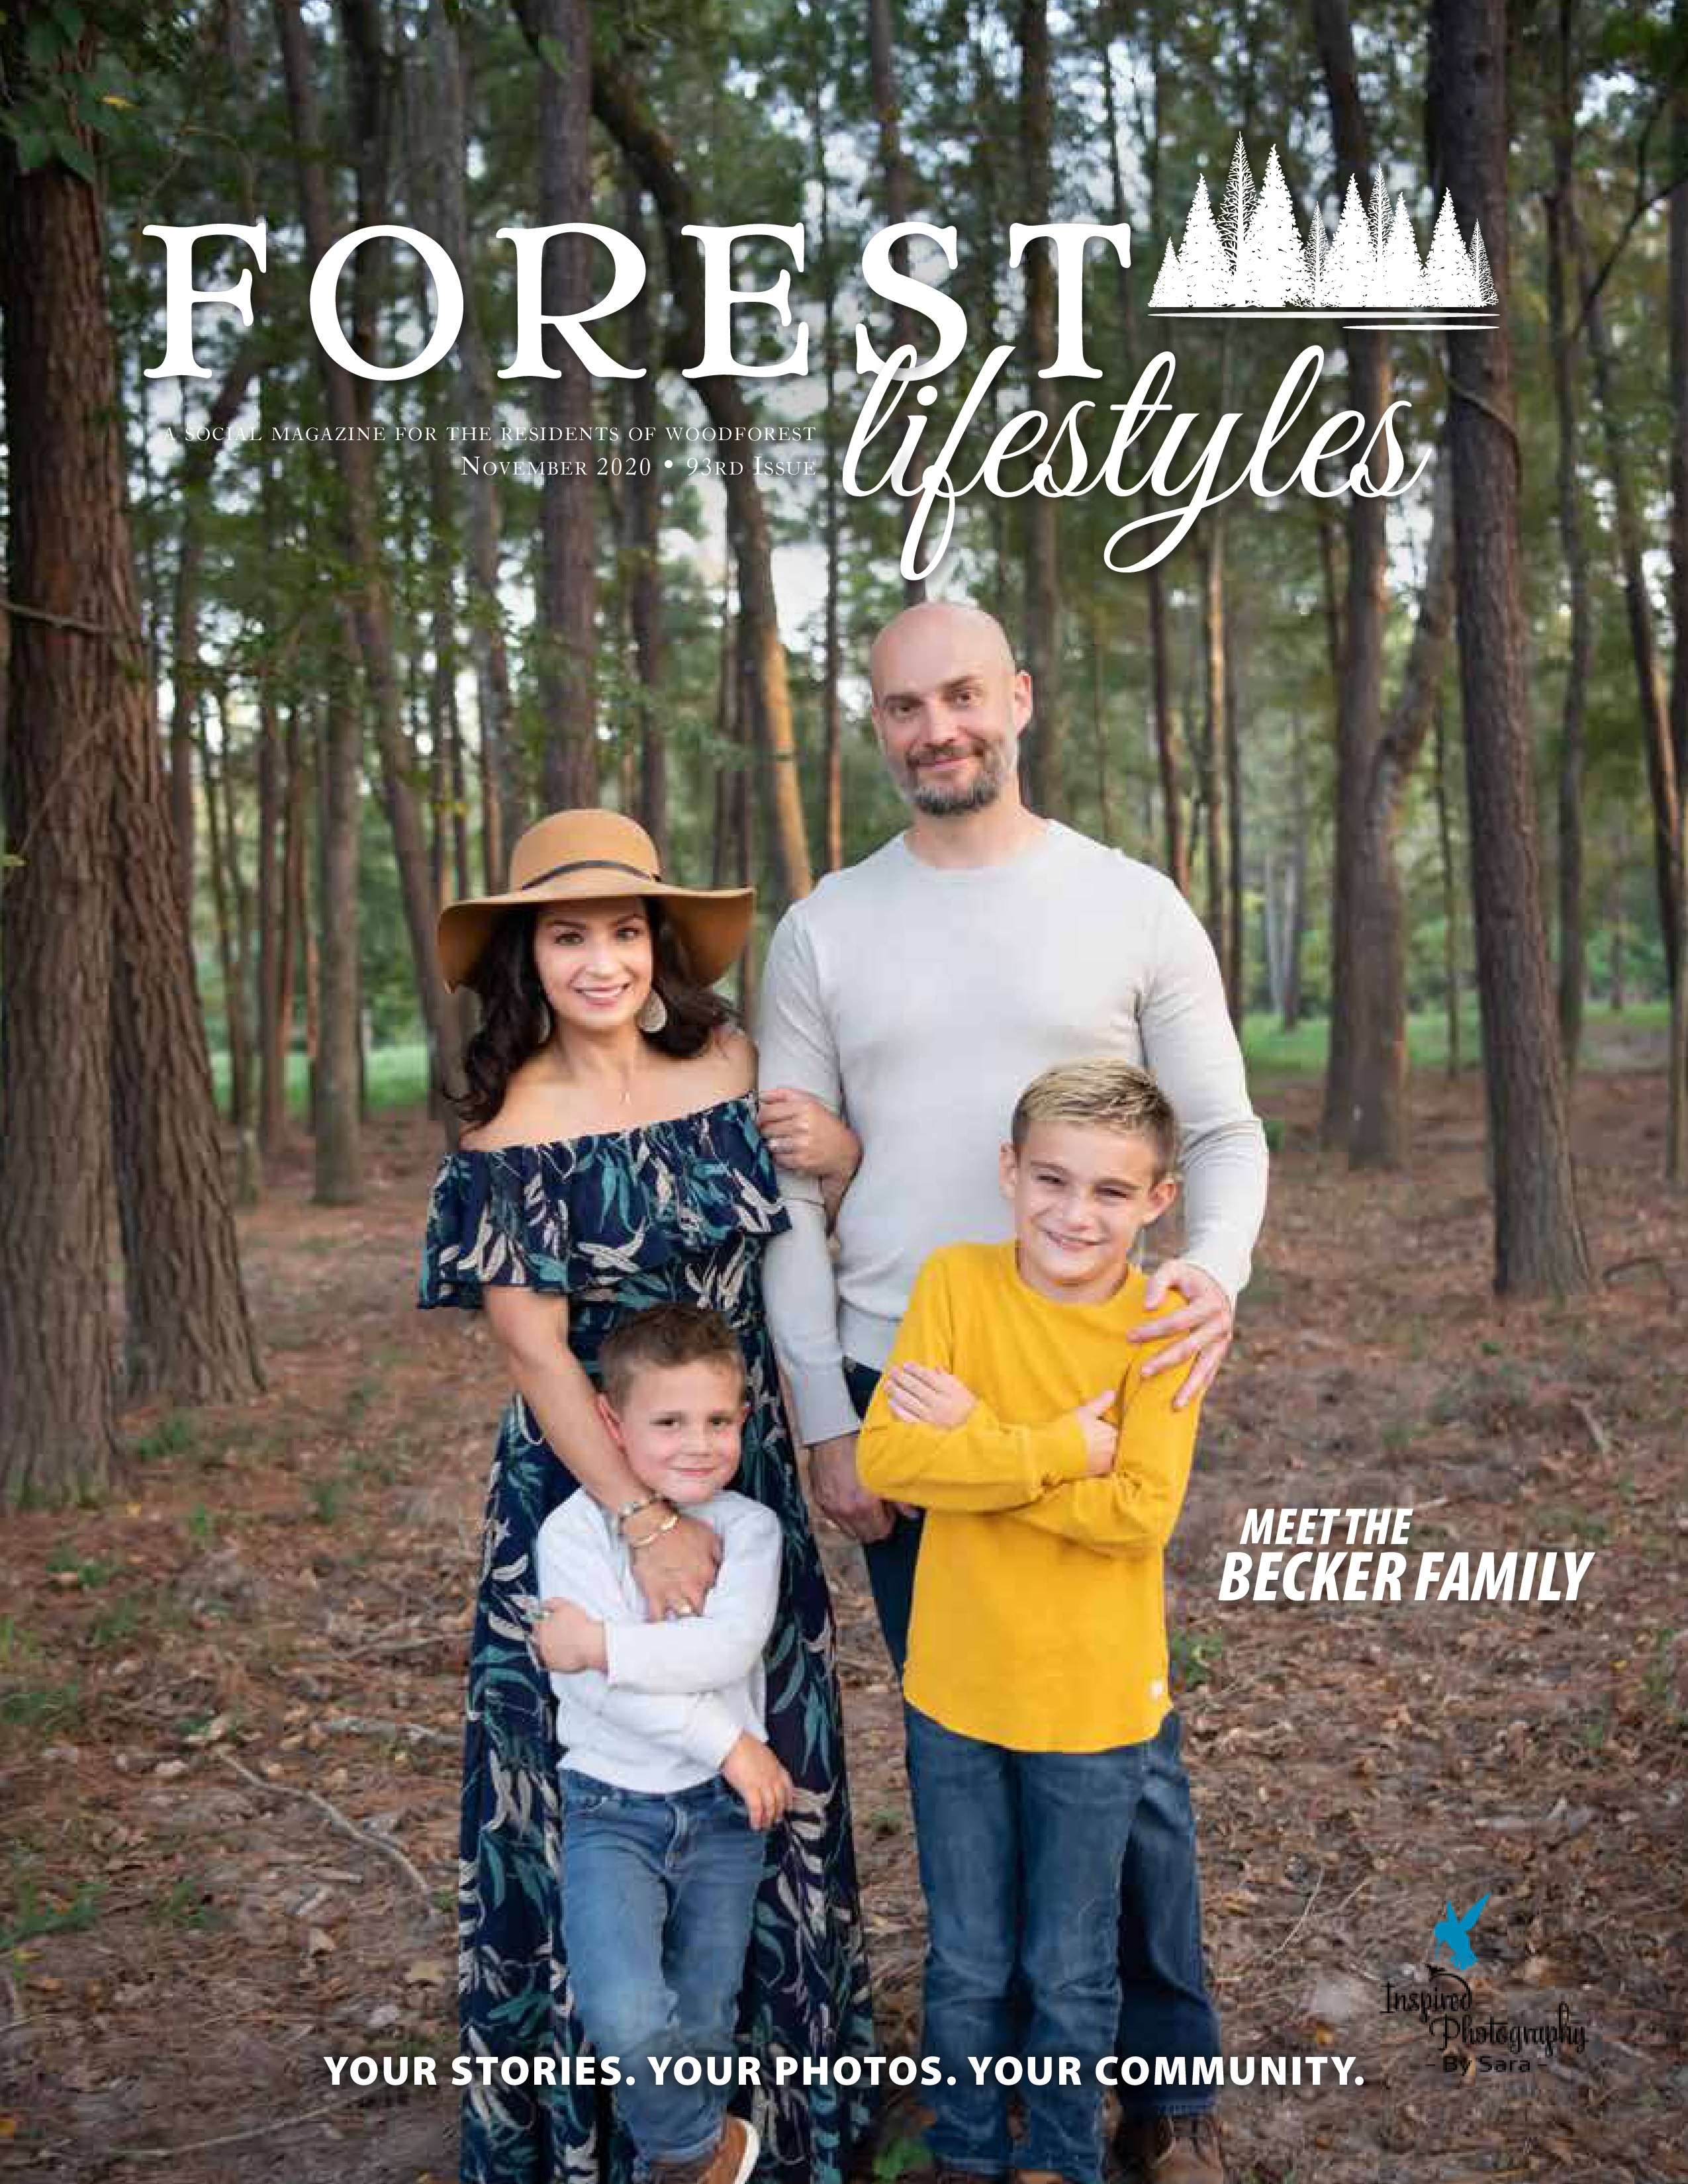 Forest Lifestyles 2020-11-01